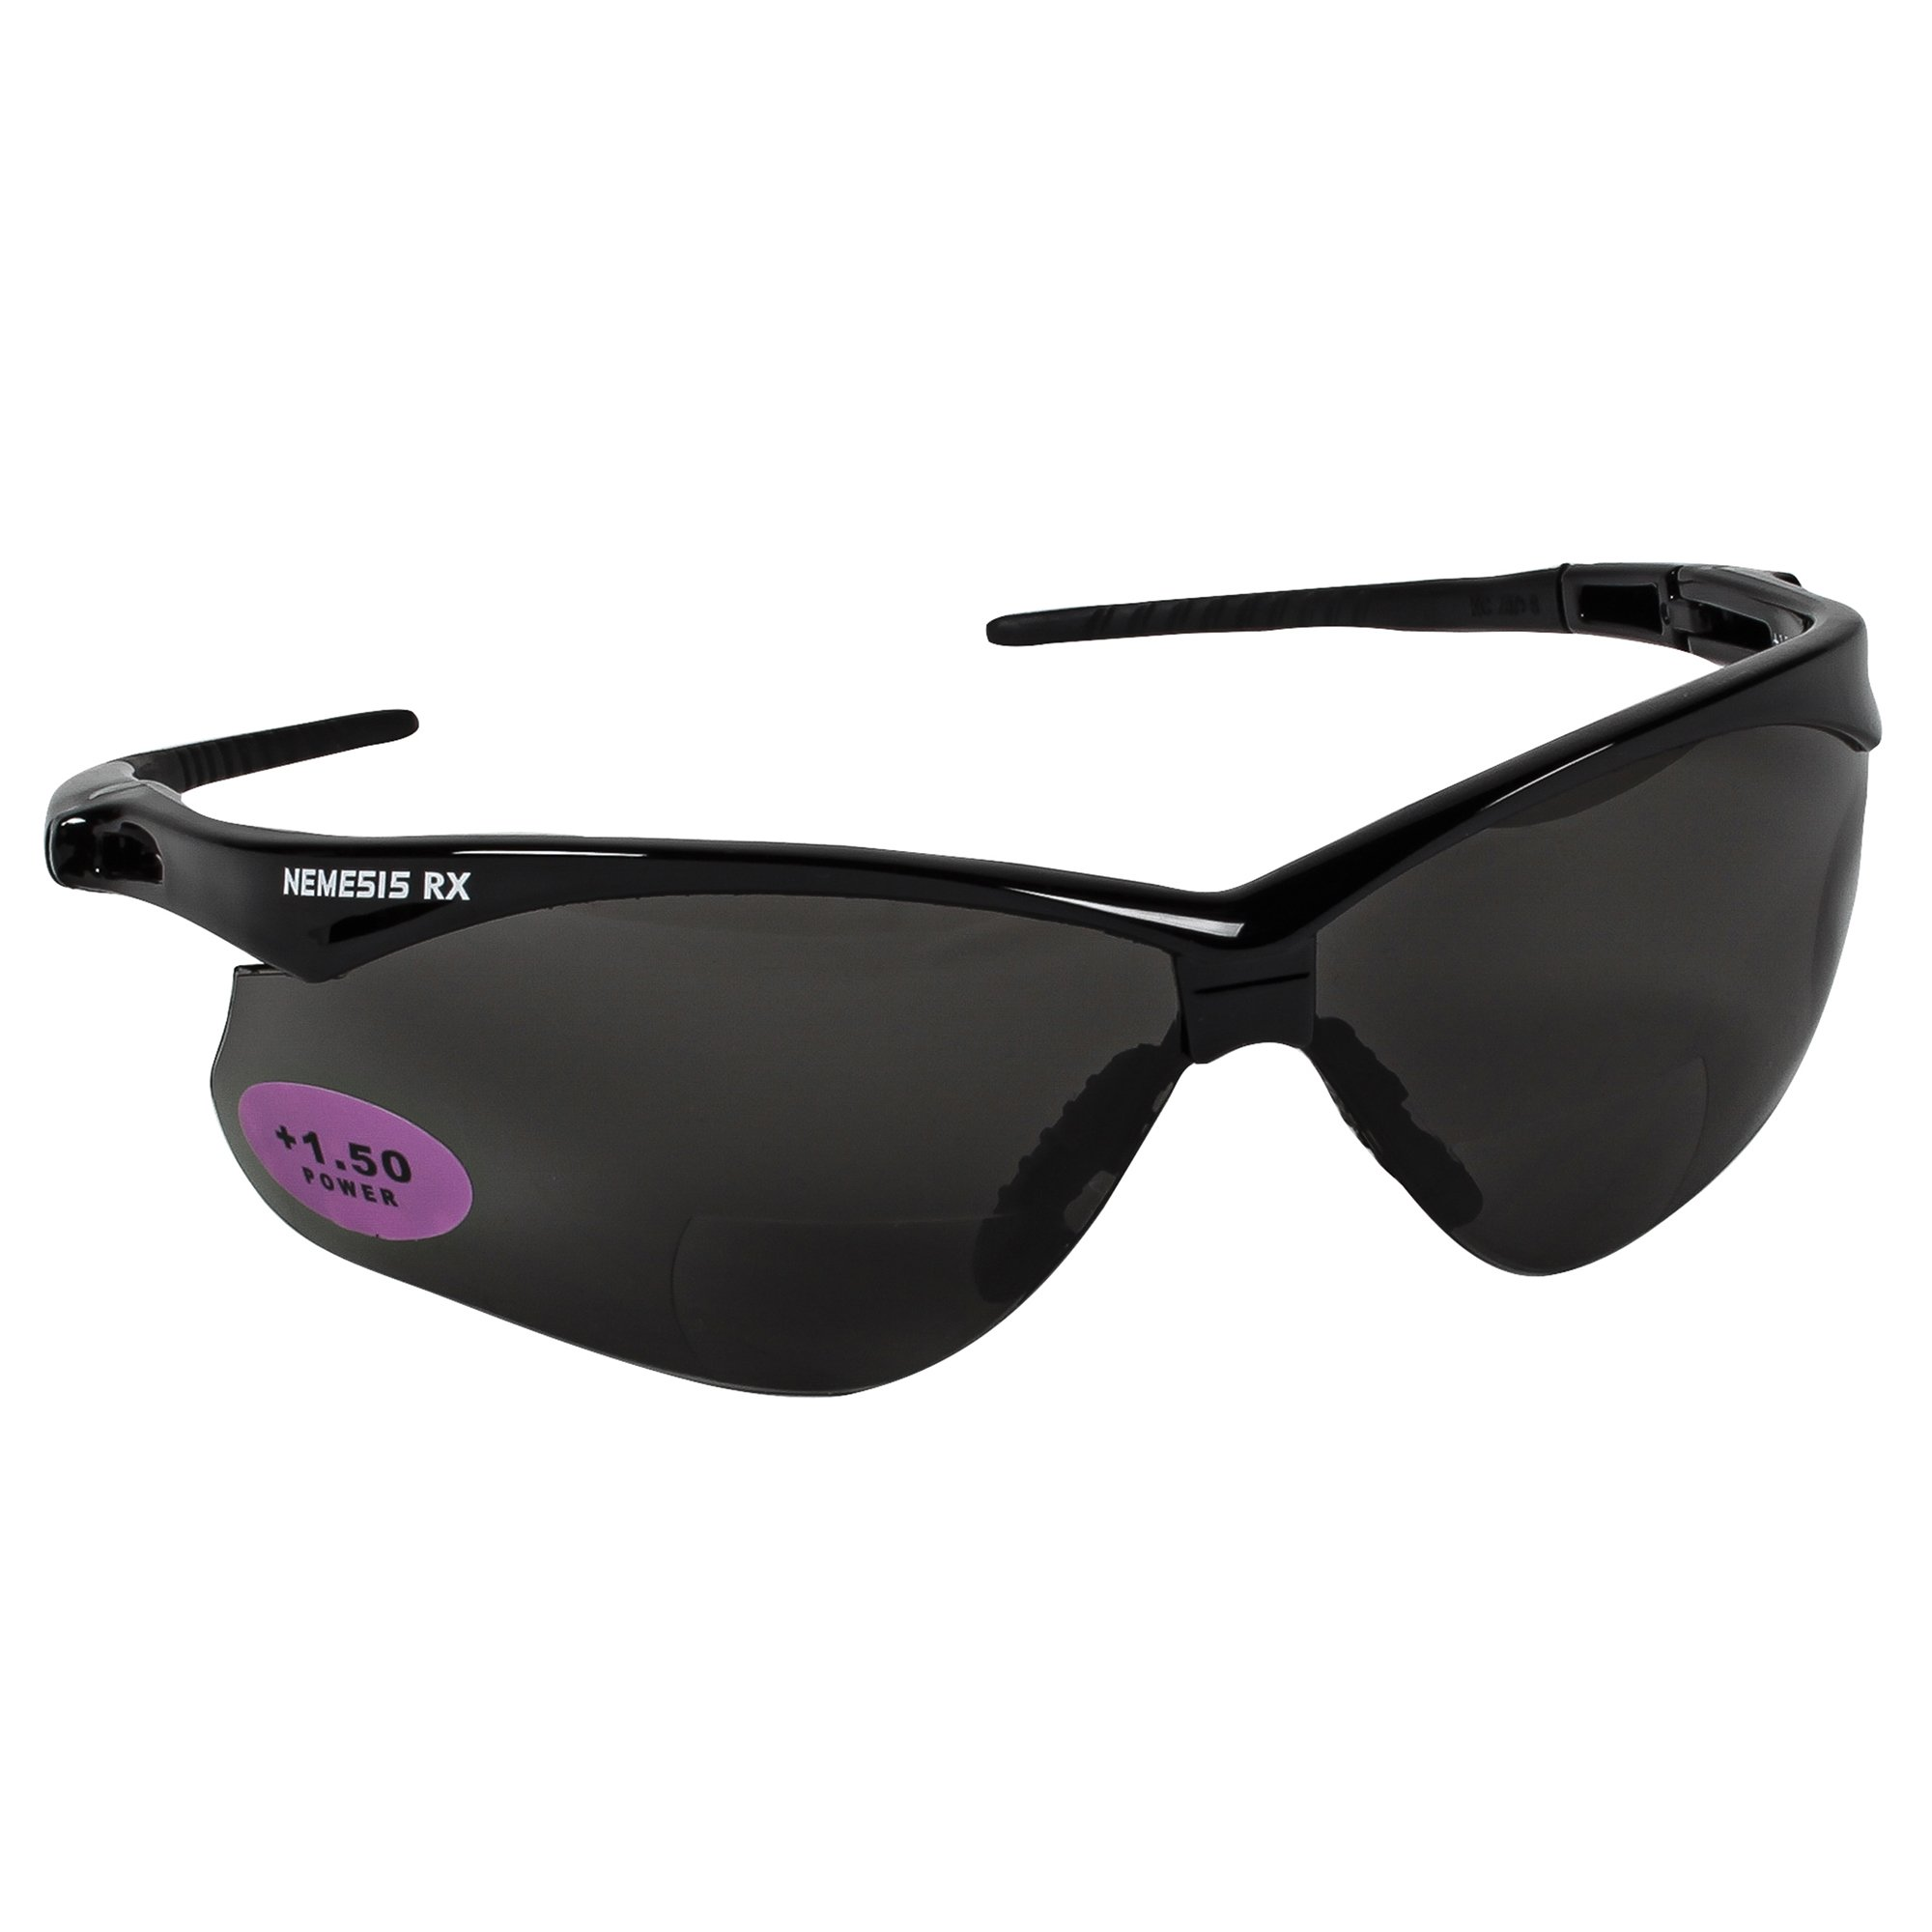 Jackson Safety V60 Nemesis Vision Correction Safety Sunglasses (22516), Smoke Readers with +1.5 Diopters, Black Frame ( Pack Of 6 )